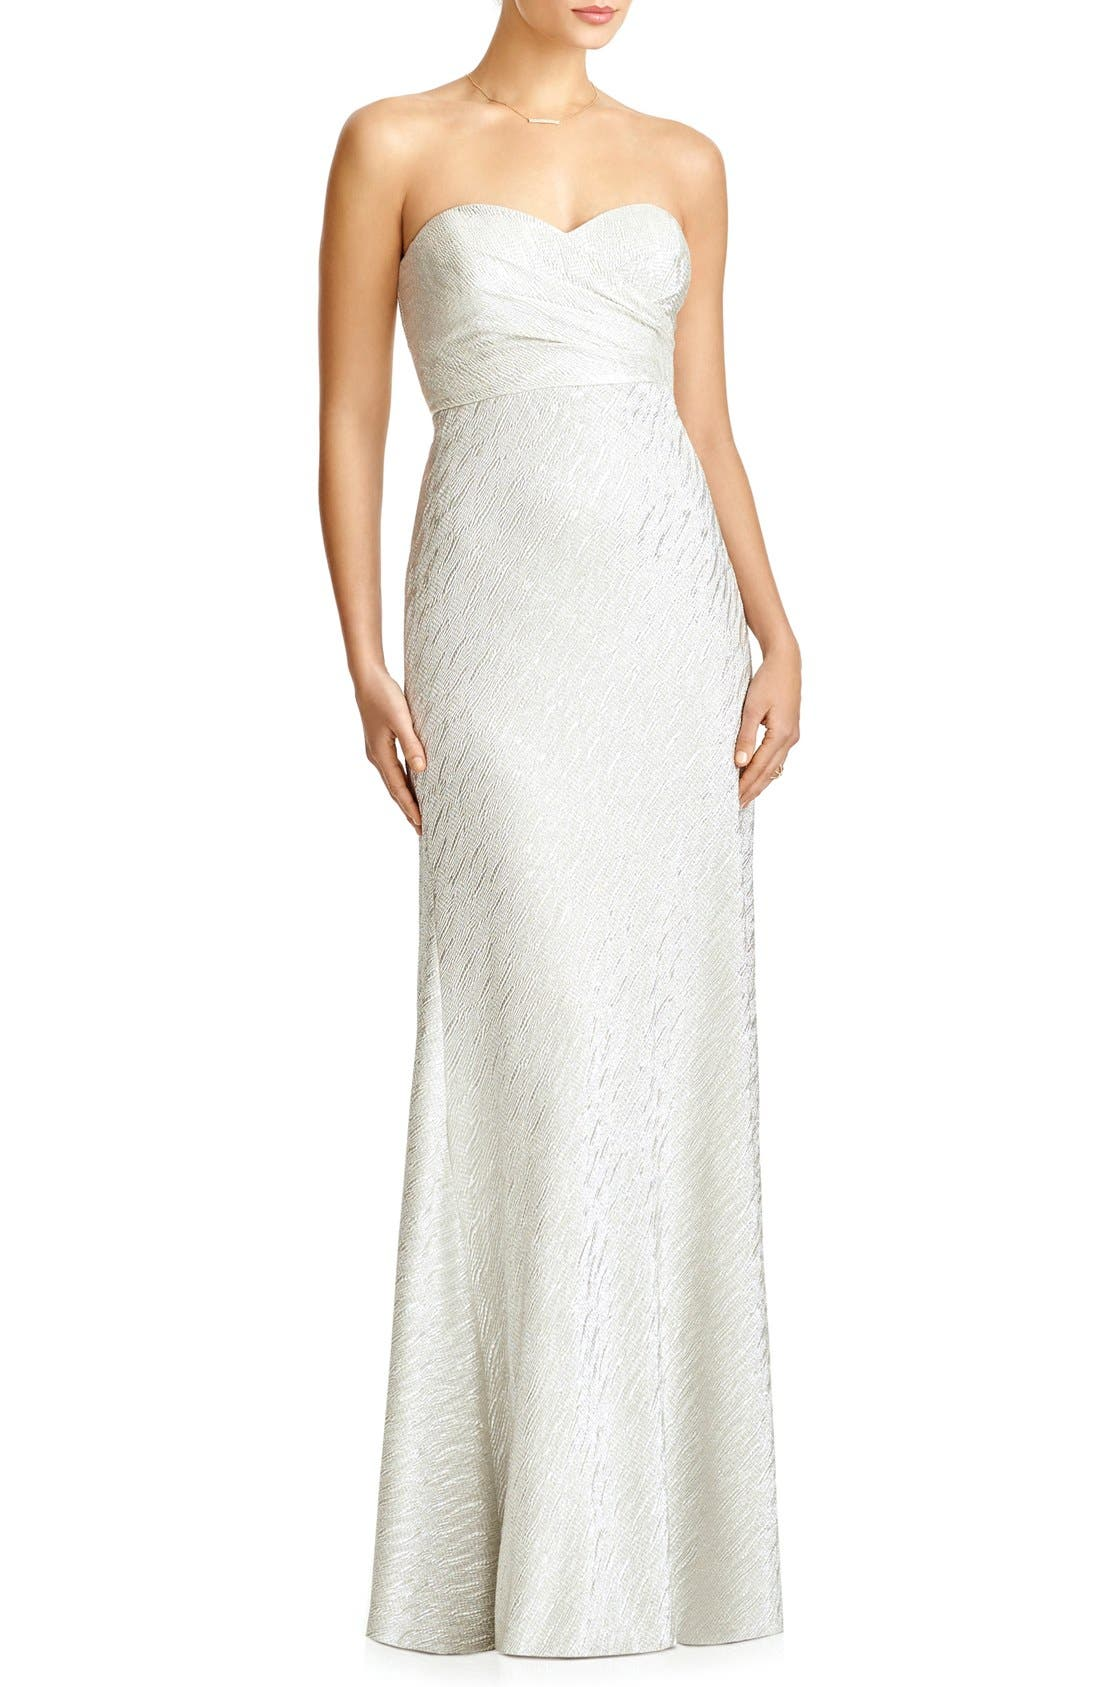 JY JENNY YOO, 'Soho' Metallic Strapless Empire Waist Gown, Main thumbnail 1, color, CHAMPAGNE SILVER